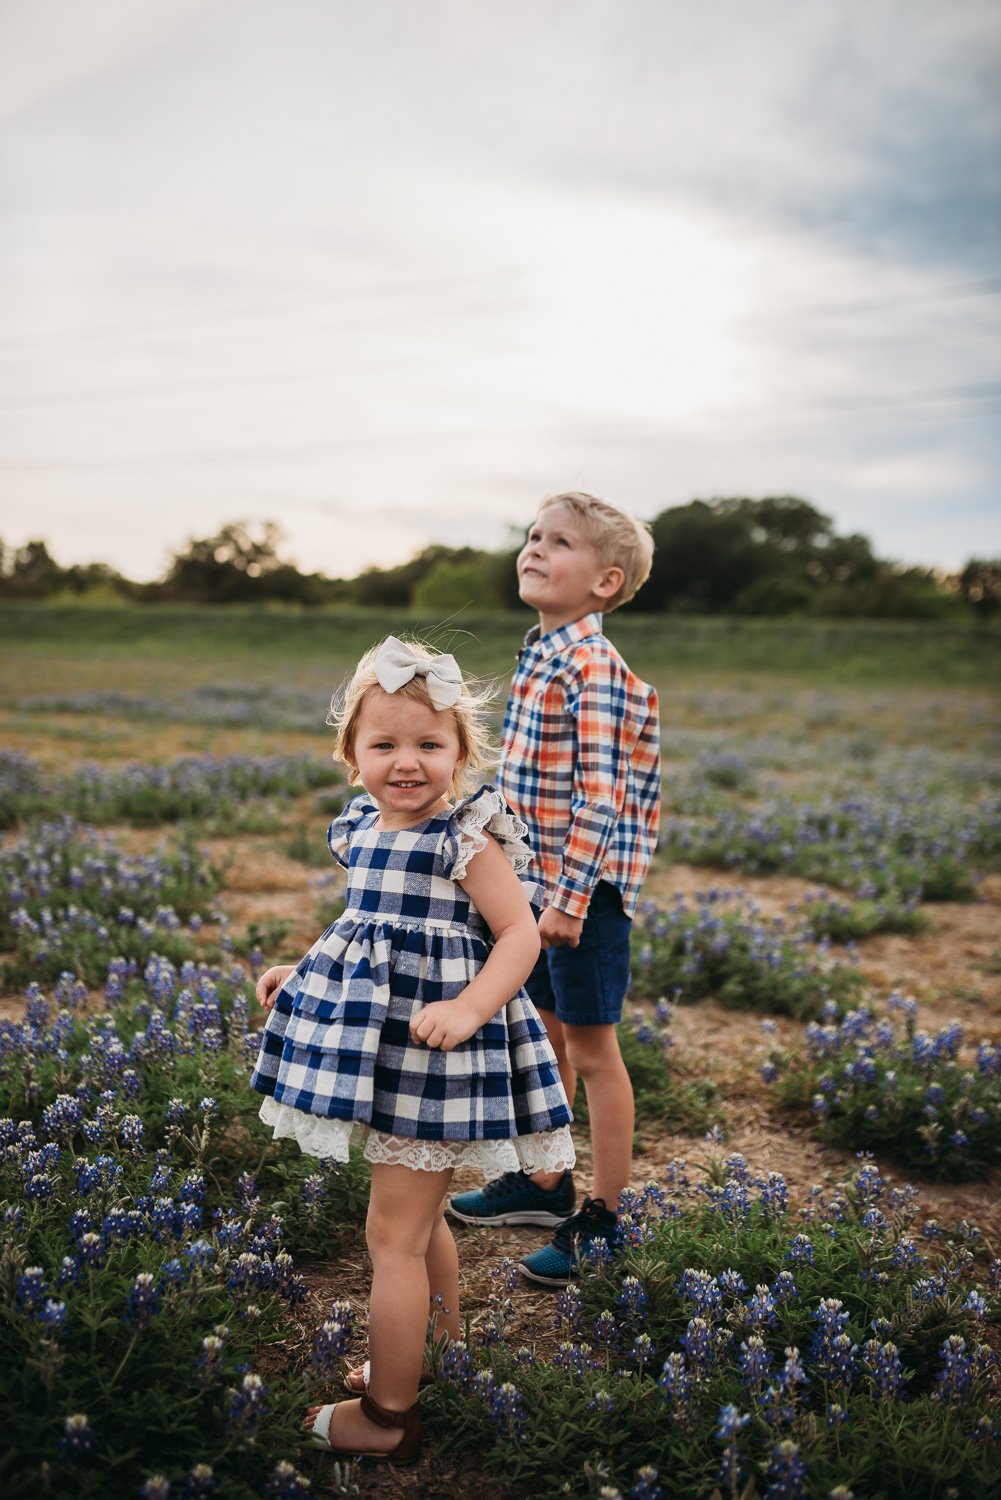 Abby Kennan, Abby Kennan Photography, San Antonio Family Photographer, San Antonio Photographer, San Antonio Bluebonnet Photographer, Bluebonnets, Texas Bluebonnets, Bluebonnet-1.jpg